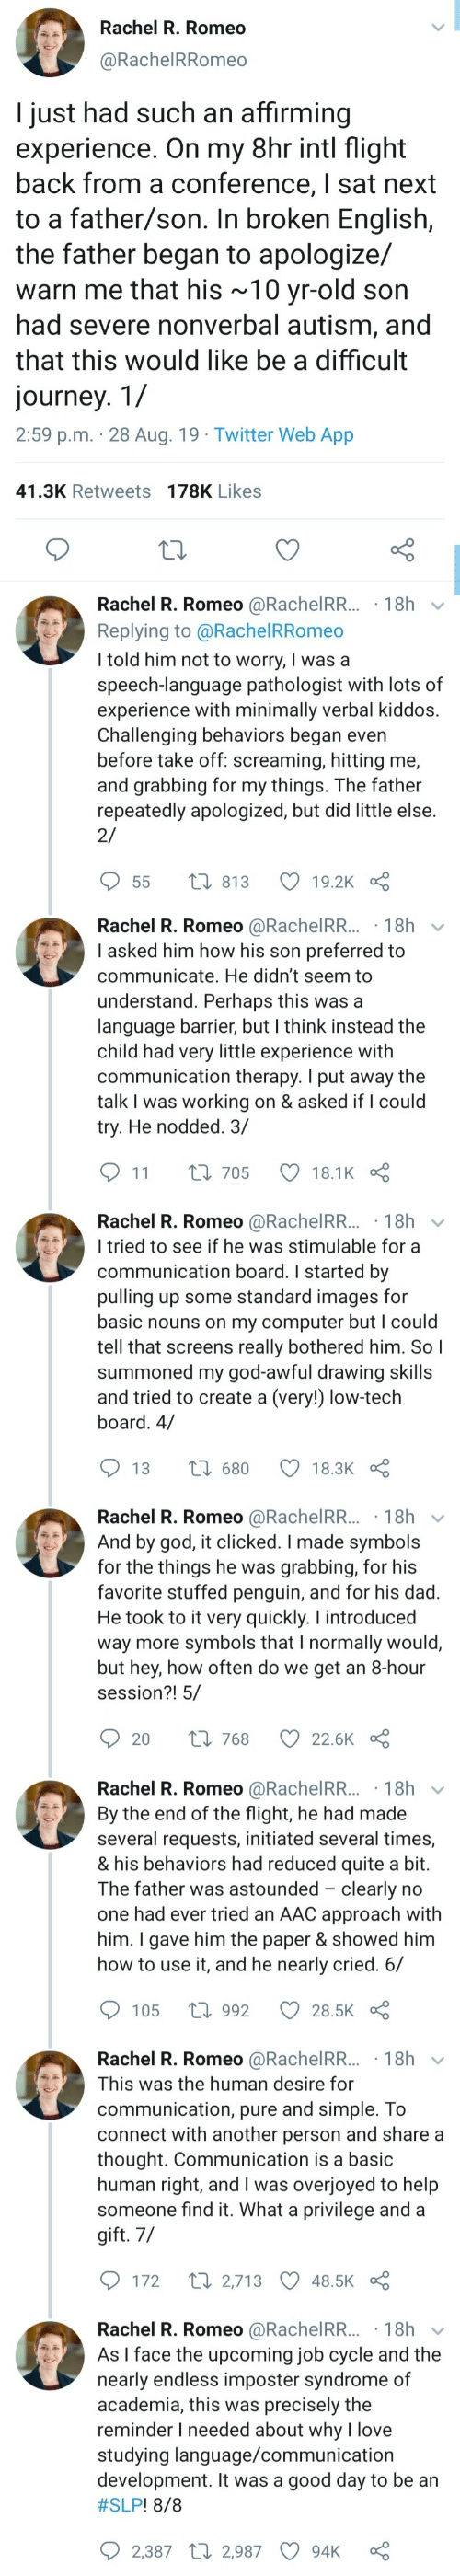 He Had: Rachel R. Romeo  @RachelRRomeo  I just had such an affirming  experience. On my 8hr intl flight  back from a conference, I sat next  to a father/son. In broken English,  the father began to apologize/  warn me that his ~10 yr-old son  had severe nonverbal autism, and  that this would like be a difficult  journey. 1/  2:59 p.m. 28 Aug. 19 Twitter Web App  41.3K Retweets 178K Likes  Rachel R. Romeo @RachelRR... 18h  Replying to @Rachel RRomeo  I told him not to worry, I was a  speech-language pathologist with lots of  experience with minimally verbal kiddos.  Challenging behaviors began even  before take off: screaming, hitting me,  and grabbing for my things. The father  repeatedly apologized, but did little else  2/  t 813  19.2K  55   Rachel R. Romeo @RachelRR...18h  I asked him how his son preferred to  communicate. He didn't seem to  understand. Perhaps this was a  language barrier, but I think instead the  child had very little experience with  communication therapy. I put away the  talk I was working on & asked if I could  try. He nodded. 3/  11  L 705  18.1K  Rachel R. Romeo @RachelRR... 18h  I tried to see if he was stimulable for a  communication board. I started by  pulling up some standard images for  basic nouns on my computer but I could  tell that screens really bothered him. So I  summoned my god-awful drawing skills  and tried to create a (very!) low-tech  board. 4/  1680  13  18.3K  Rachel R. Romeo @RachelRR... 18h  And by god, it clicked. I made symbols  for the things he was  favorite stuffed penguin, and for his dad.  He took to it very quickly. I introduced  way more symbols that I normally would,  but hey, how often do we get an 8-hour  session?! 5/  grabbing, for his  Li 768  20  22.6K   Rachel R. Romeo @RachelRR... 18h  By the end of the flight, he had made  several requests, initiated several times,  & his behaviors had reduced quite a bit.  The father was astounded clearly no  one had ever tried an AAC approach with  him. I gave him the paper & showed him  how to use it, and he nearly cried. 6/  1992  105  28.5K  Rachel R. Romeo @RachelRR... 18h  This was the human desire for  communication, pure and simple. To  connect with another person and share a  thought. Communication is a basic  human right, and I was overjoyed to help  someone find it. What a privilege and a  gift. 7/  t 2,713 48.5K  172  Rachel R. Romeo @RachelRR... 18h  As I face the upcoming job cycle and the  nearly endless imposter syndrome of  academia, this was precisely the  reminder I needed about why l love  studying language/communication  development. It was a good day to be an  #SLP ! 8/8  2,387 2,987  94K